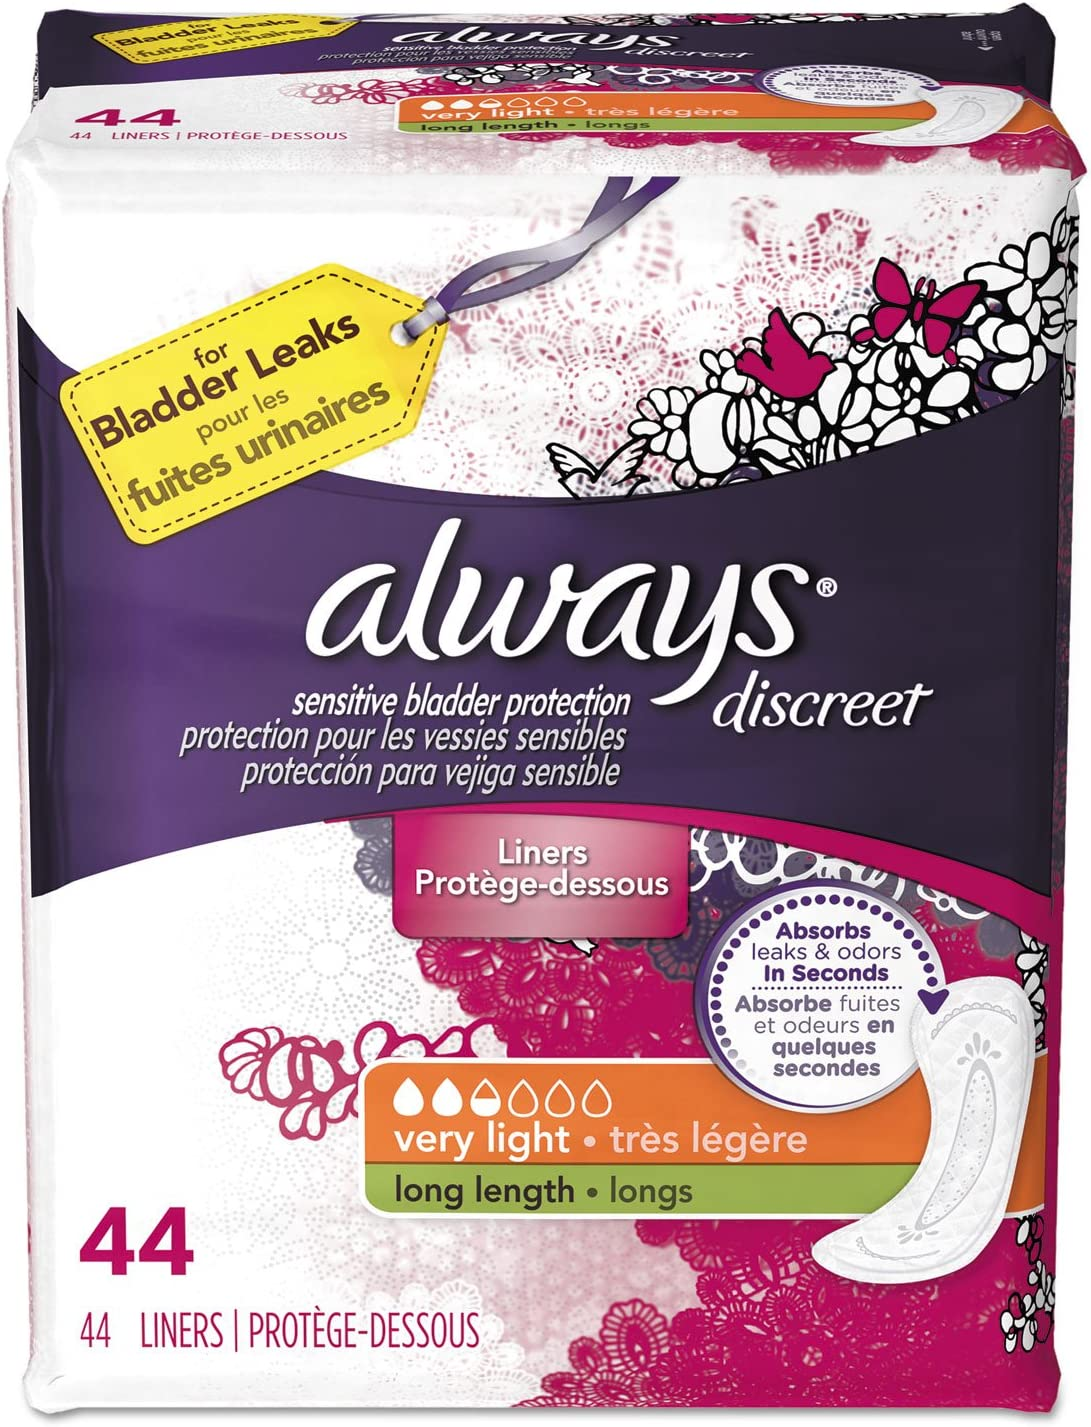 Discreet Sensitive Bladder Max 52% OFF Protection Liners Very Long Max 62% OFF Light 4